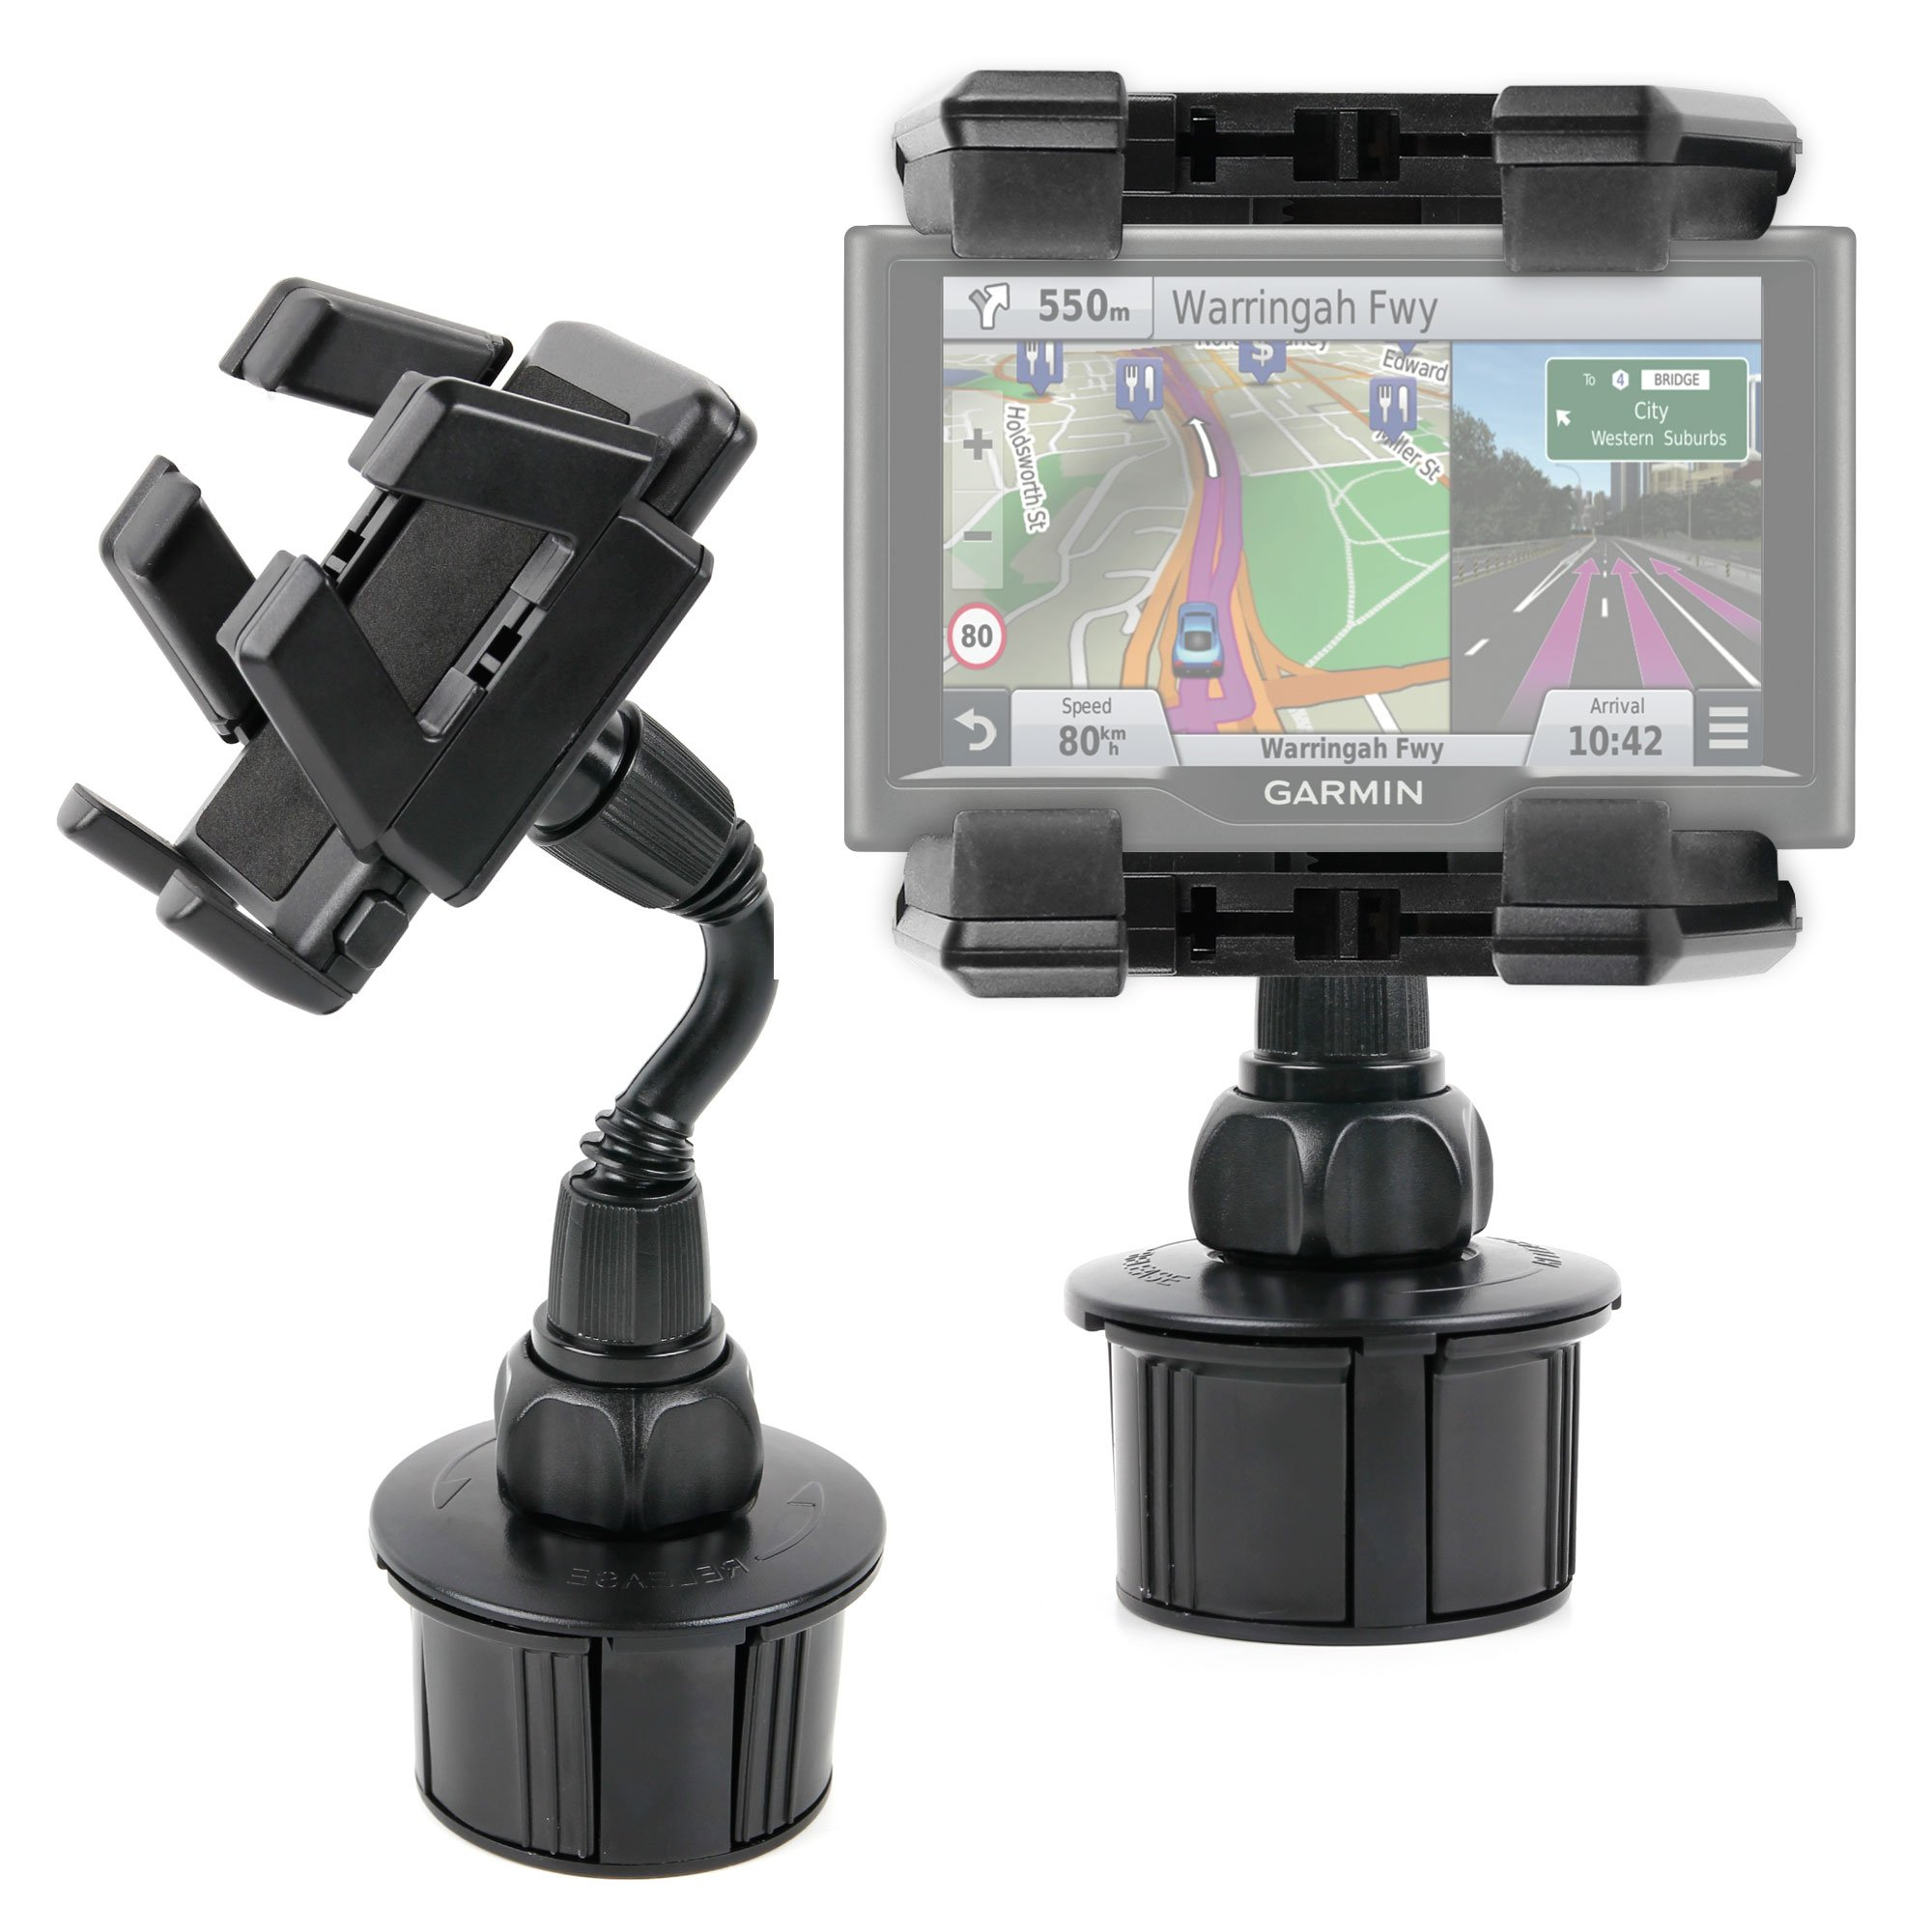 DURAGADGET Anti-Shake, Anti-Vibrate in-Car GPS Cup Holder Mount with Adjustable Arms - Compatible with The New Garmin nuvi 55LM, 57LM, 57LMT, 58LMT, 67LMT, 68LMT & Garmin Camper 660LMT-D